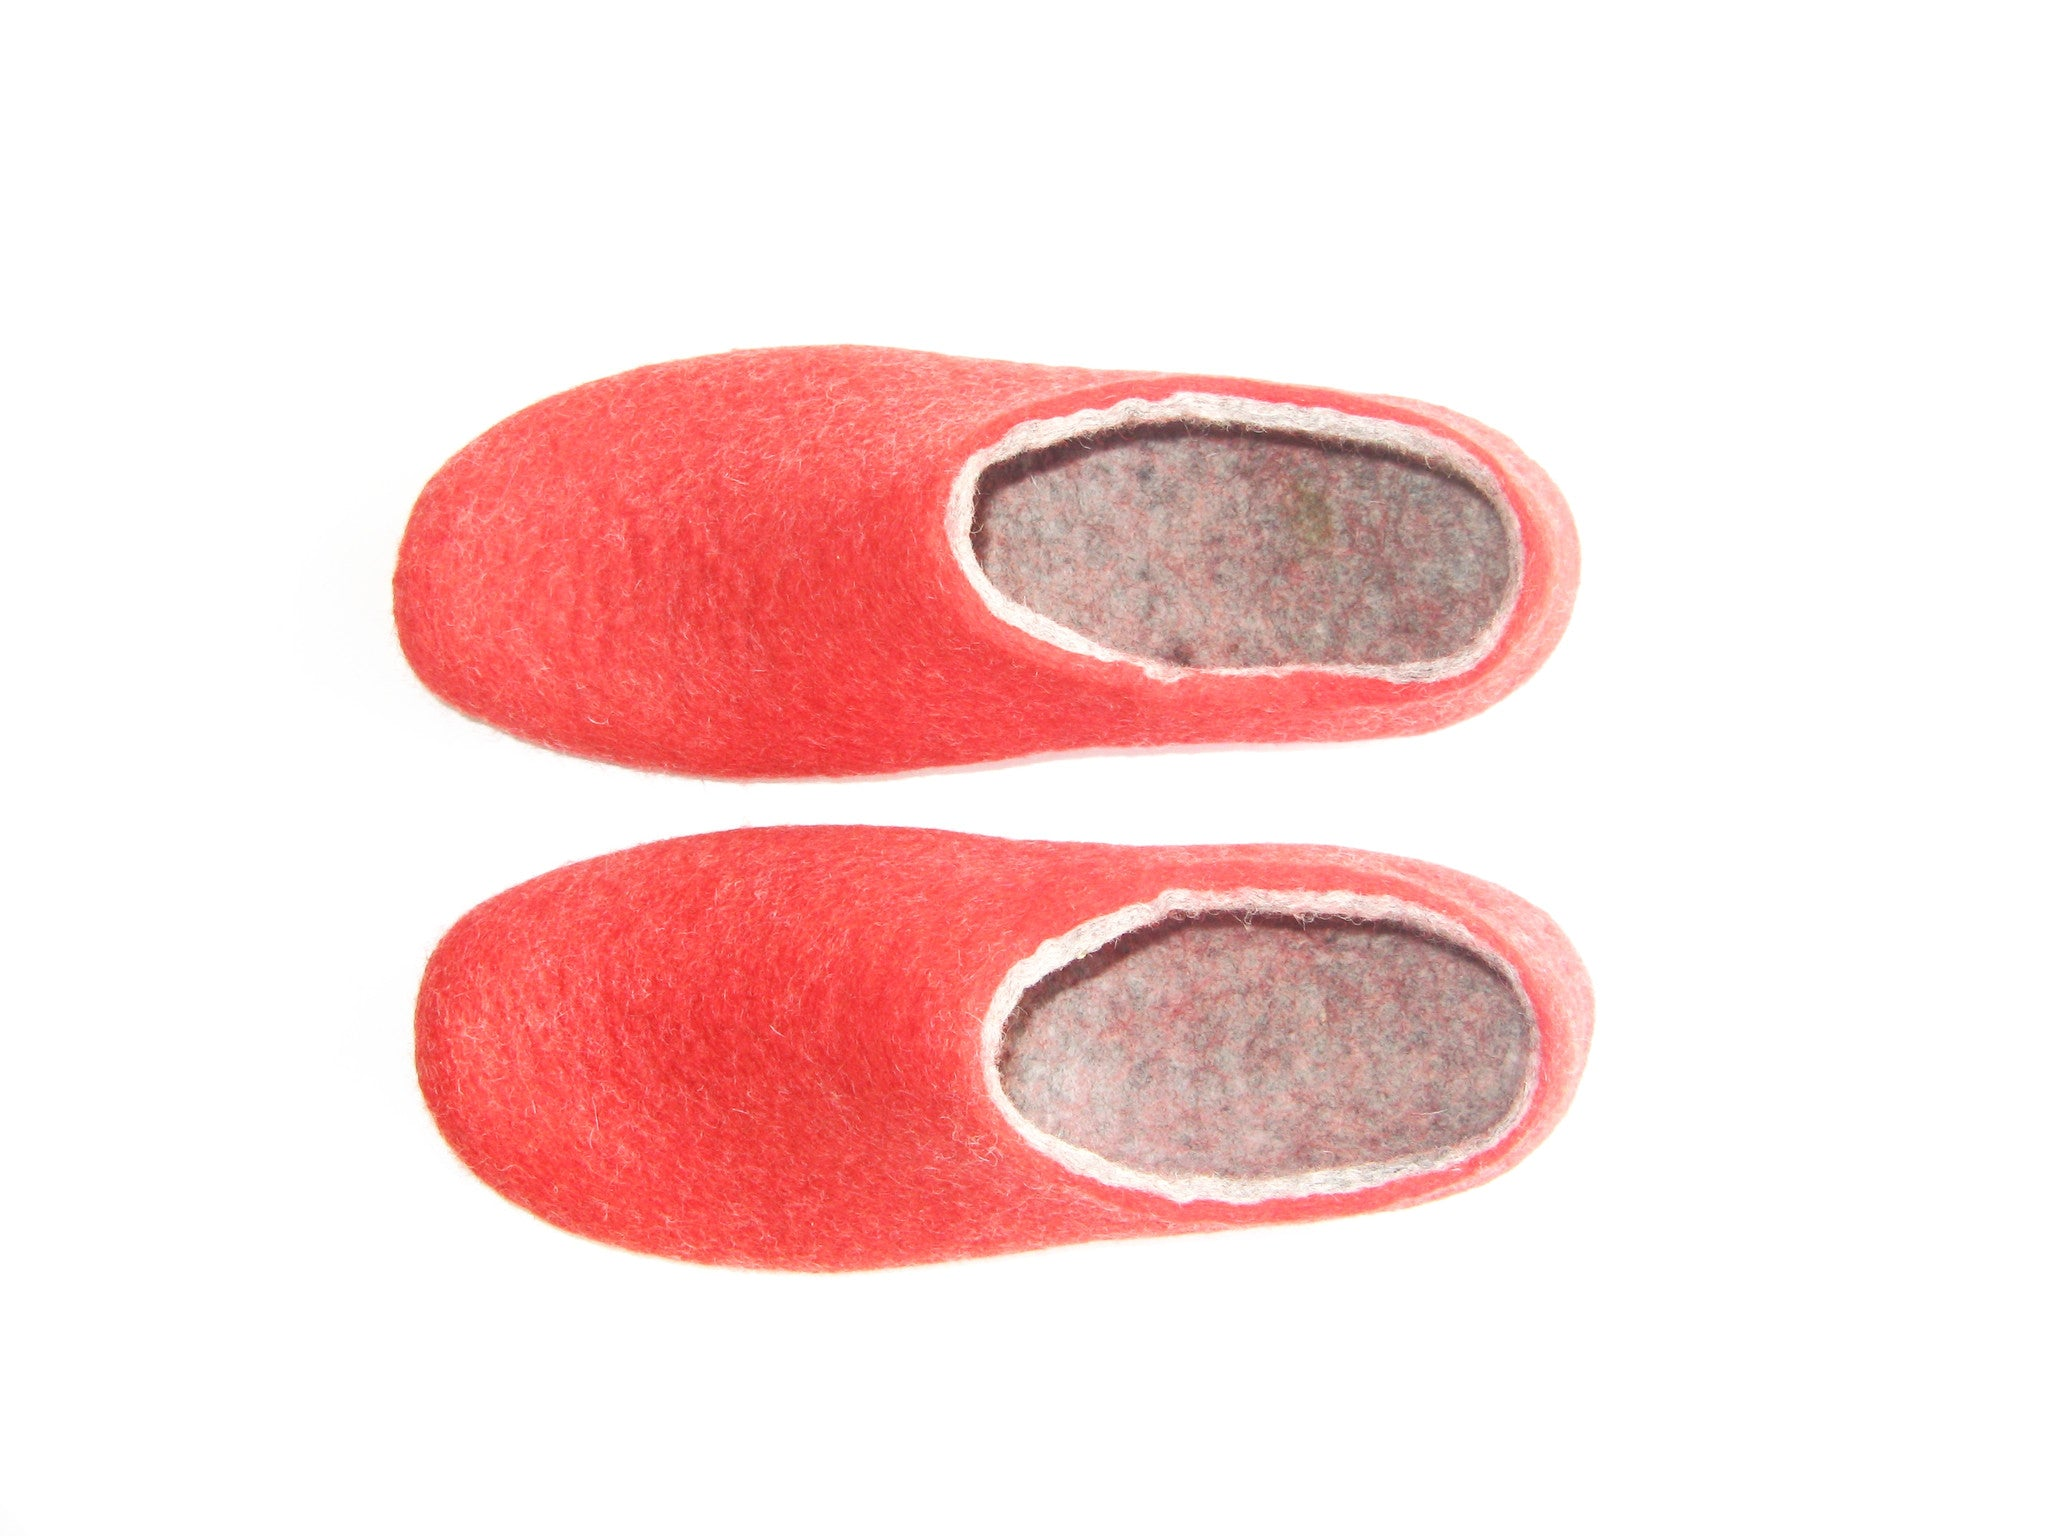 Womens Felted Slippers Red Strawberry Indoors - Wool Walker  - 3